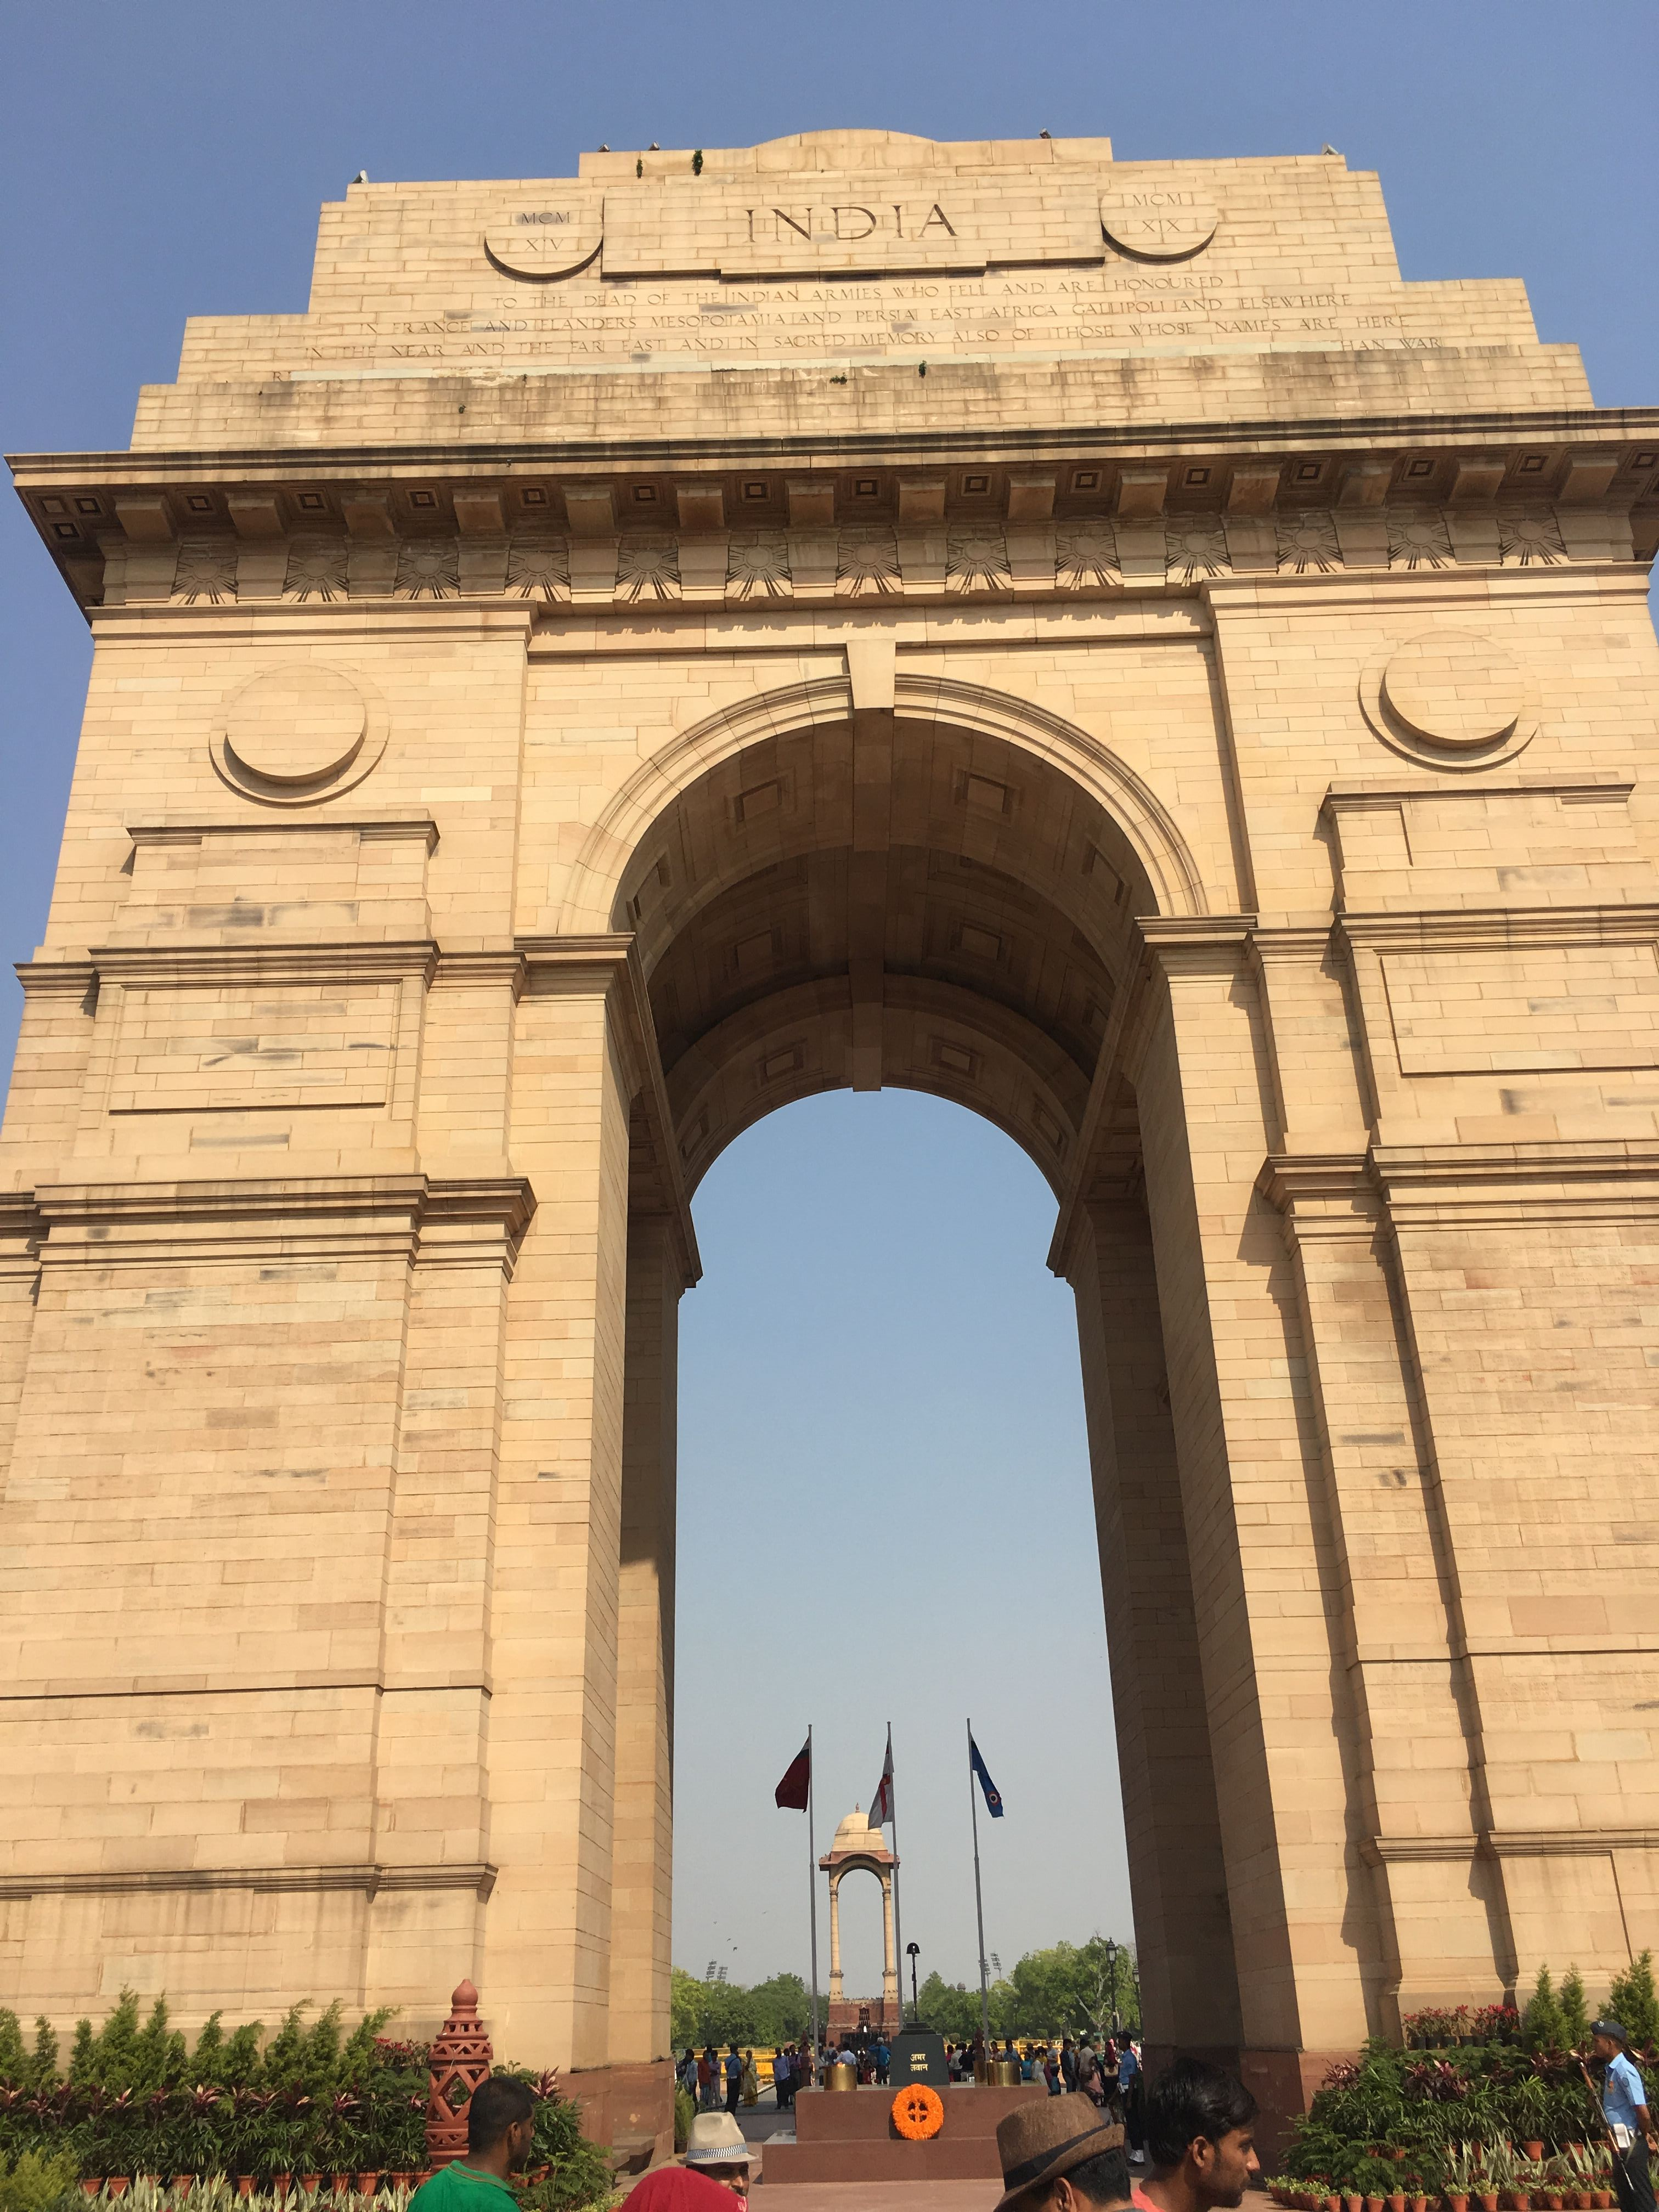 india-gate-nova-delhi-india-nao-e-caro-viajar